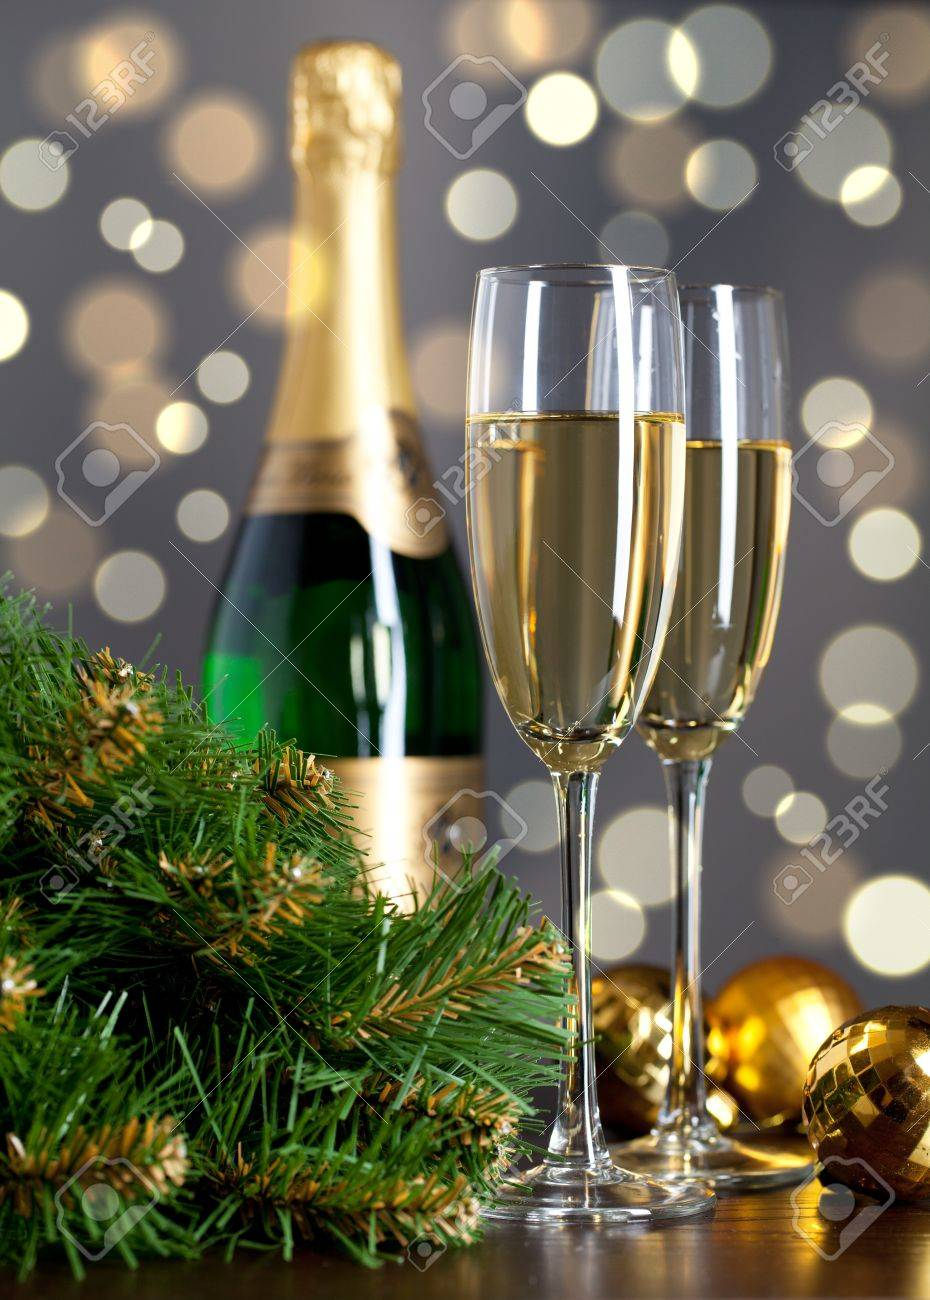 Two full glasses of champagne over color background Stock Photo - 8618089